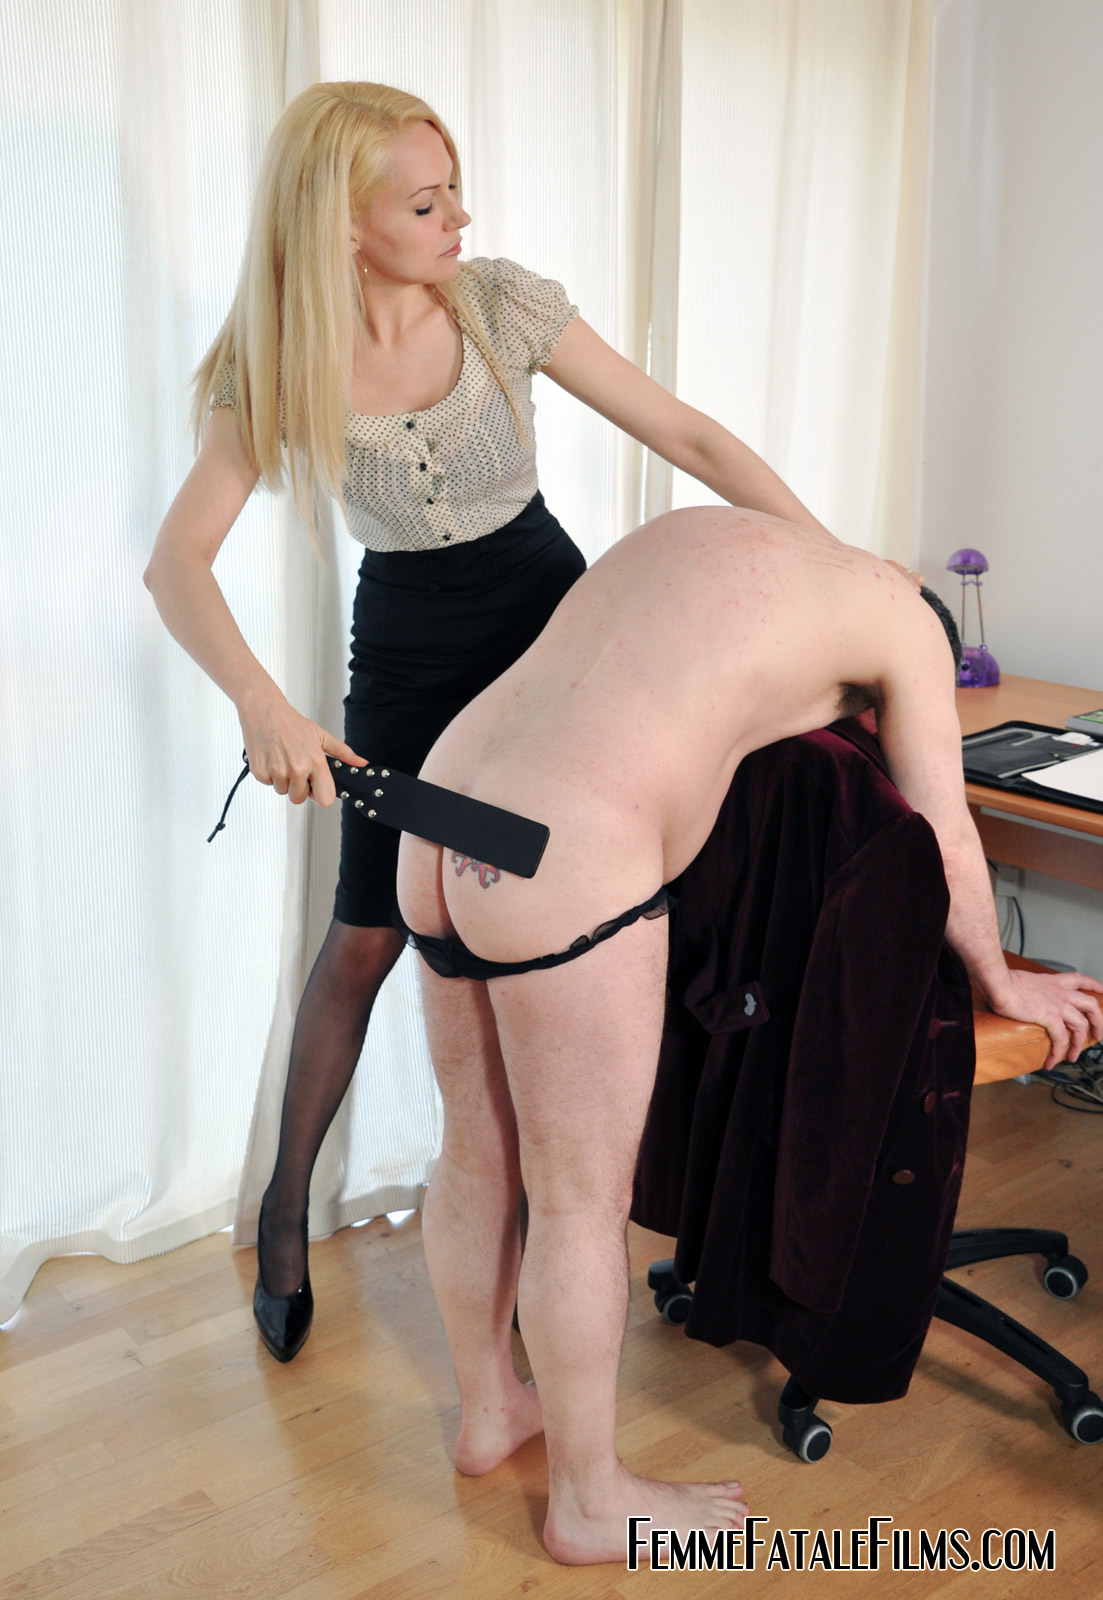 Spanked by a blonde milf